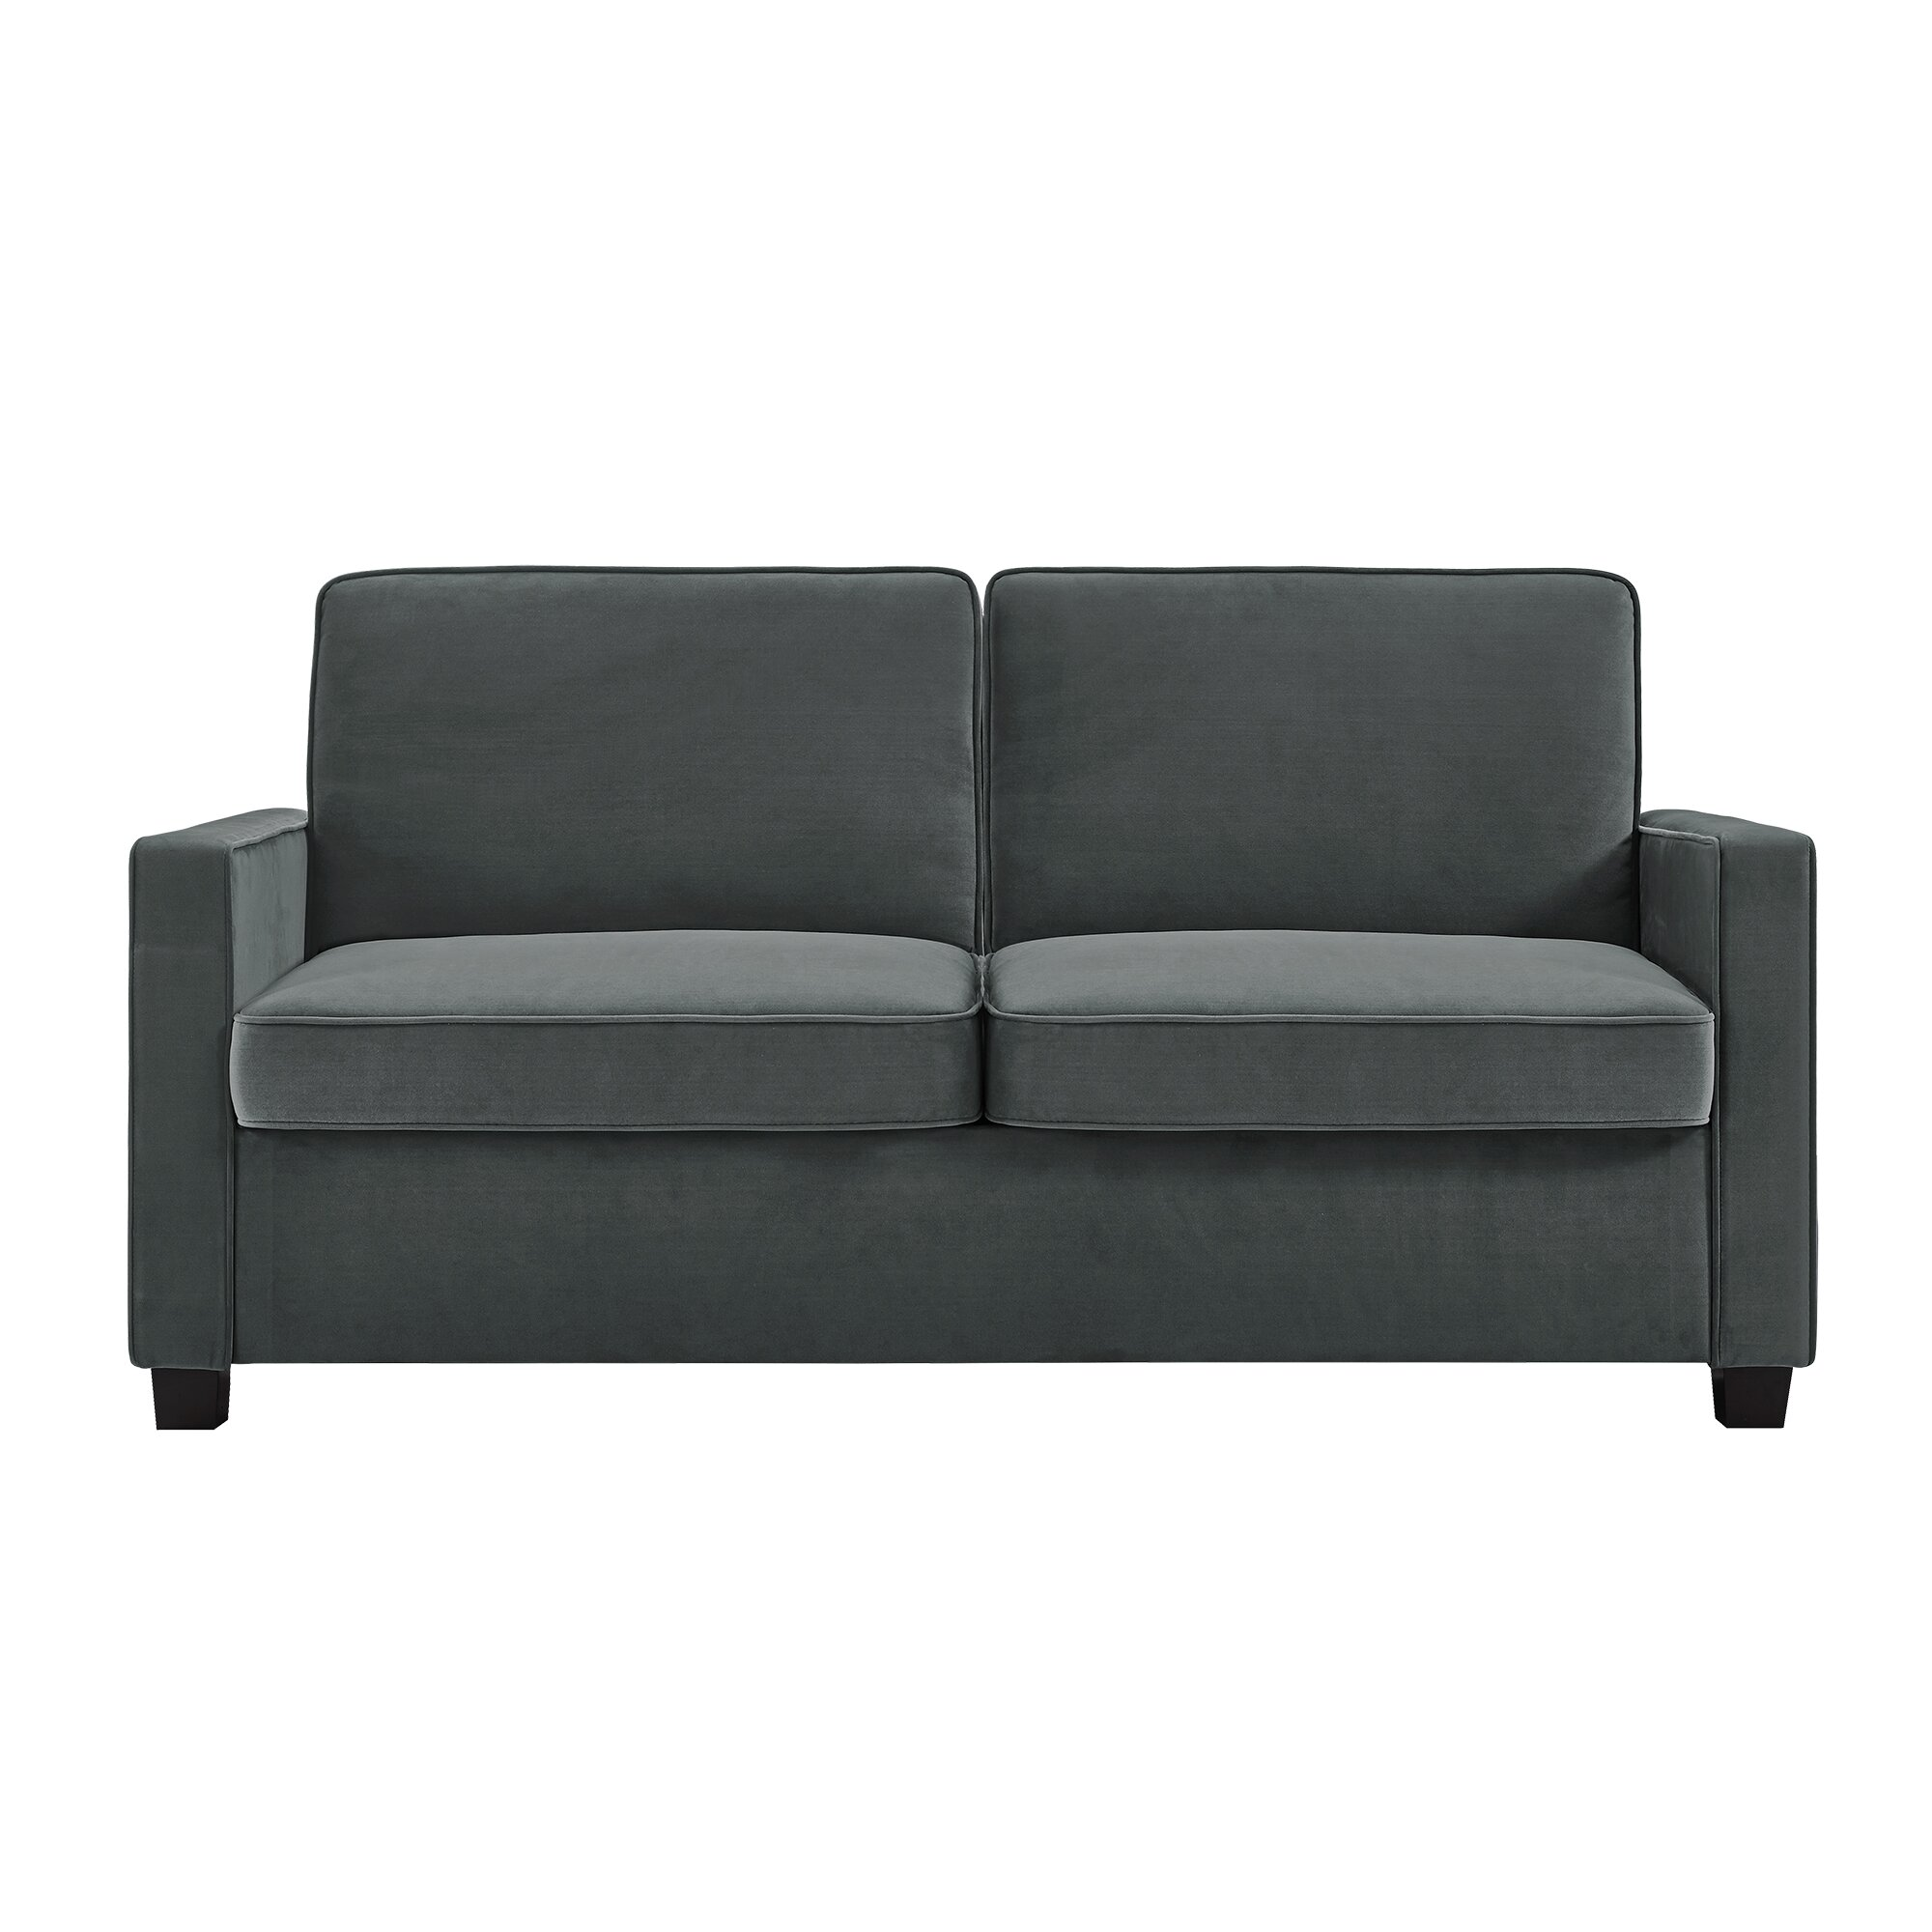 Sofas 4 less antioch ca hereo sofa for Furniture 2000 antioch ca